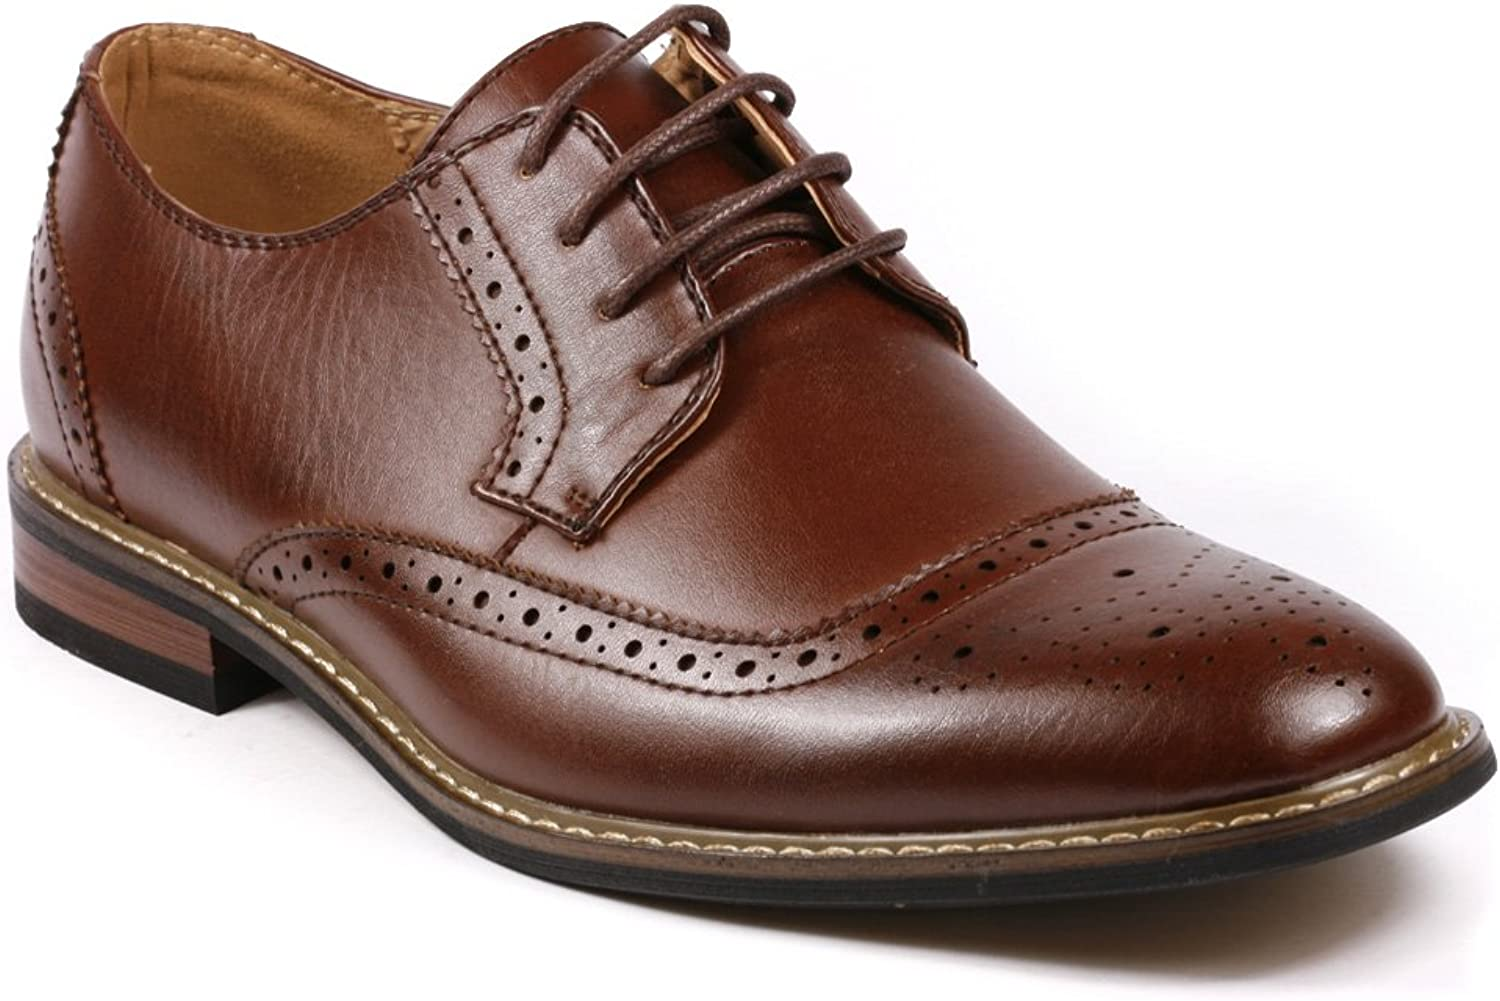 Metrocharm Alex-05 Men's Perforated Lace Up Oxford Dress shoes